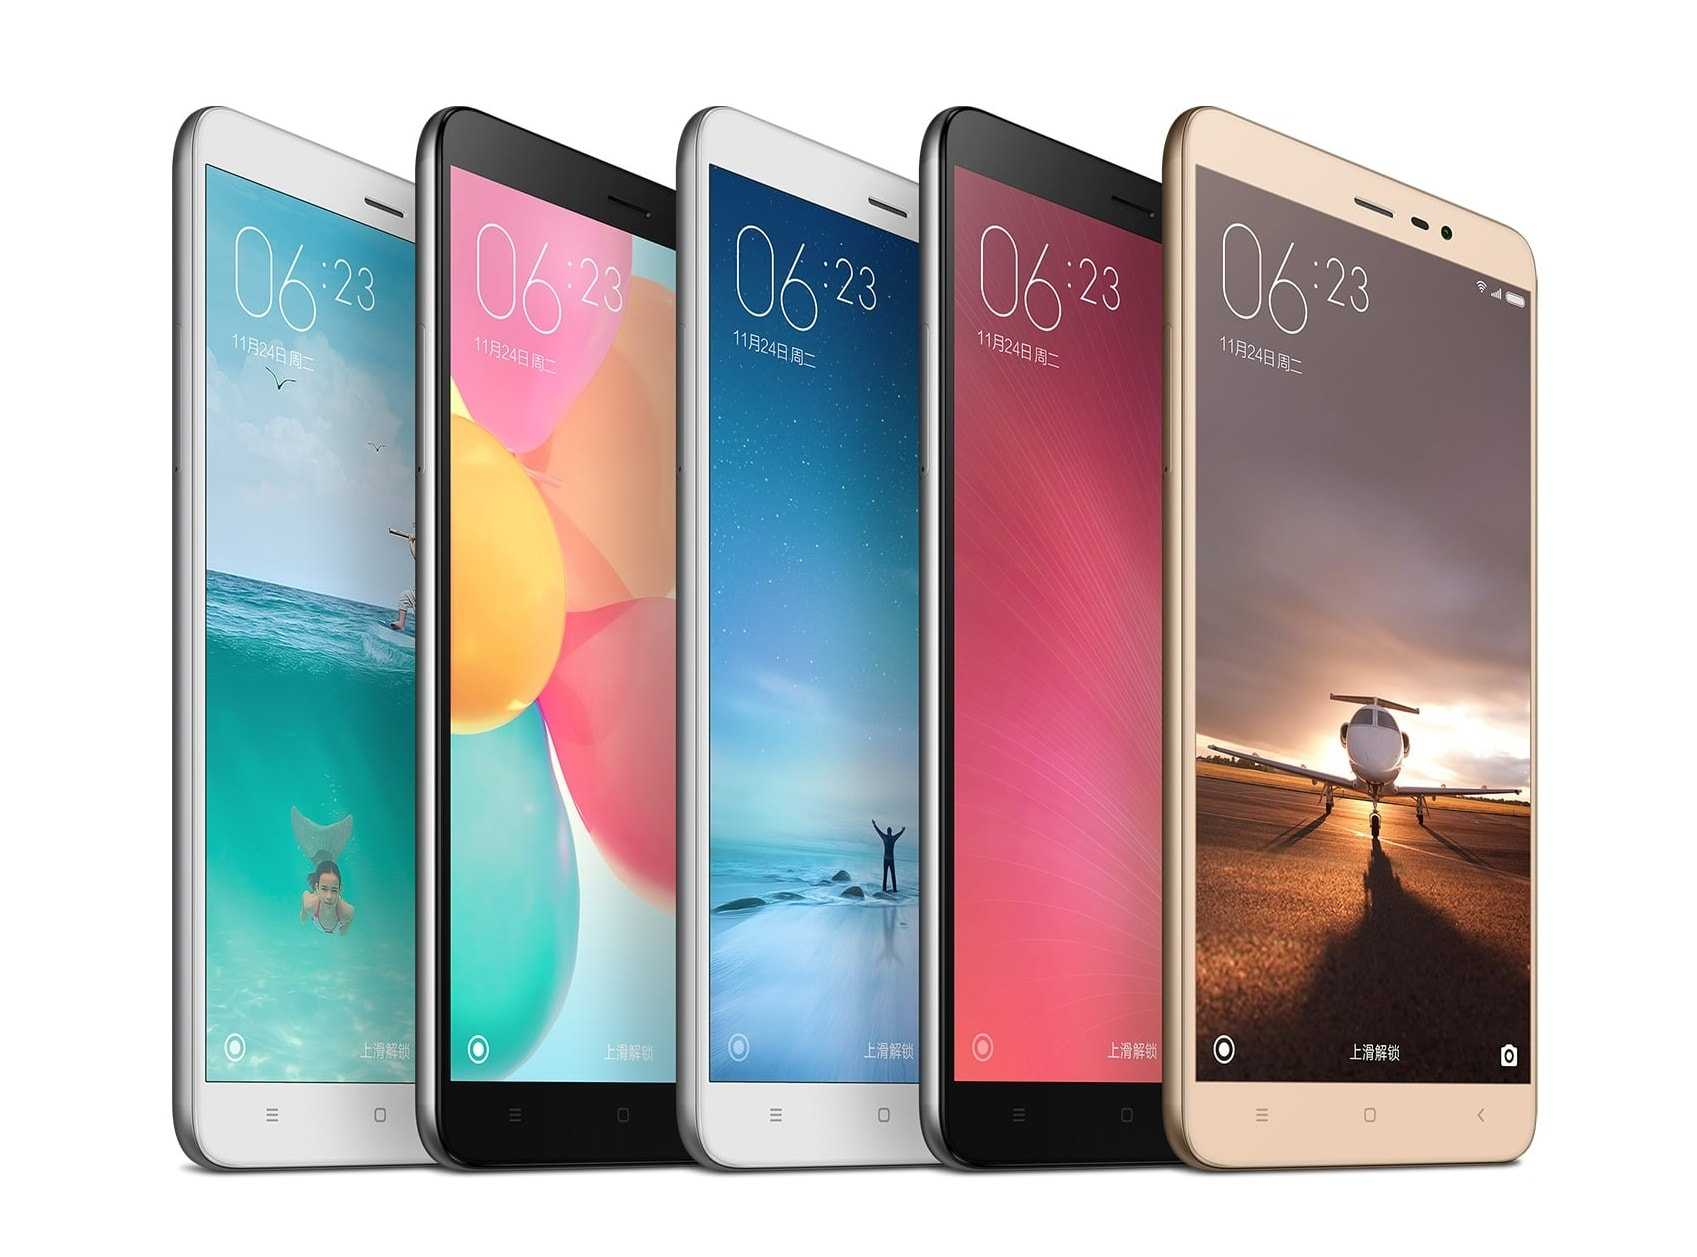 Perbandingan Hp Oppo A37 Vs Apple Iphone 5s Futureloka